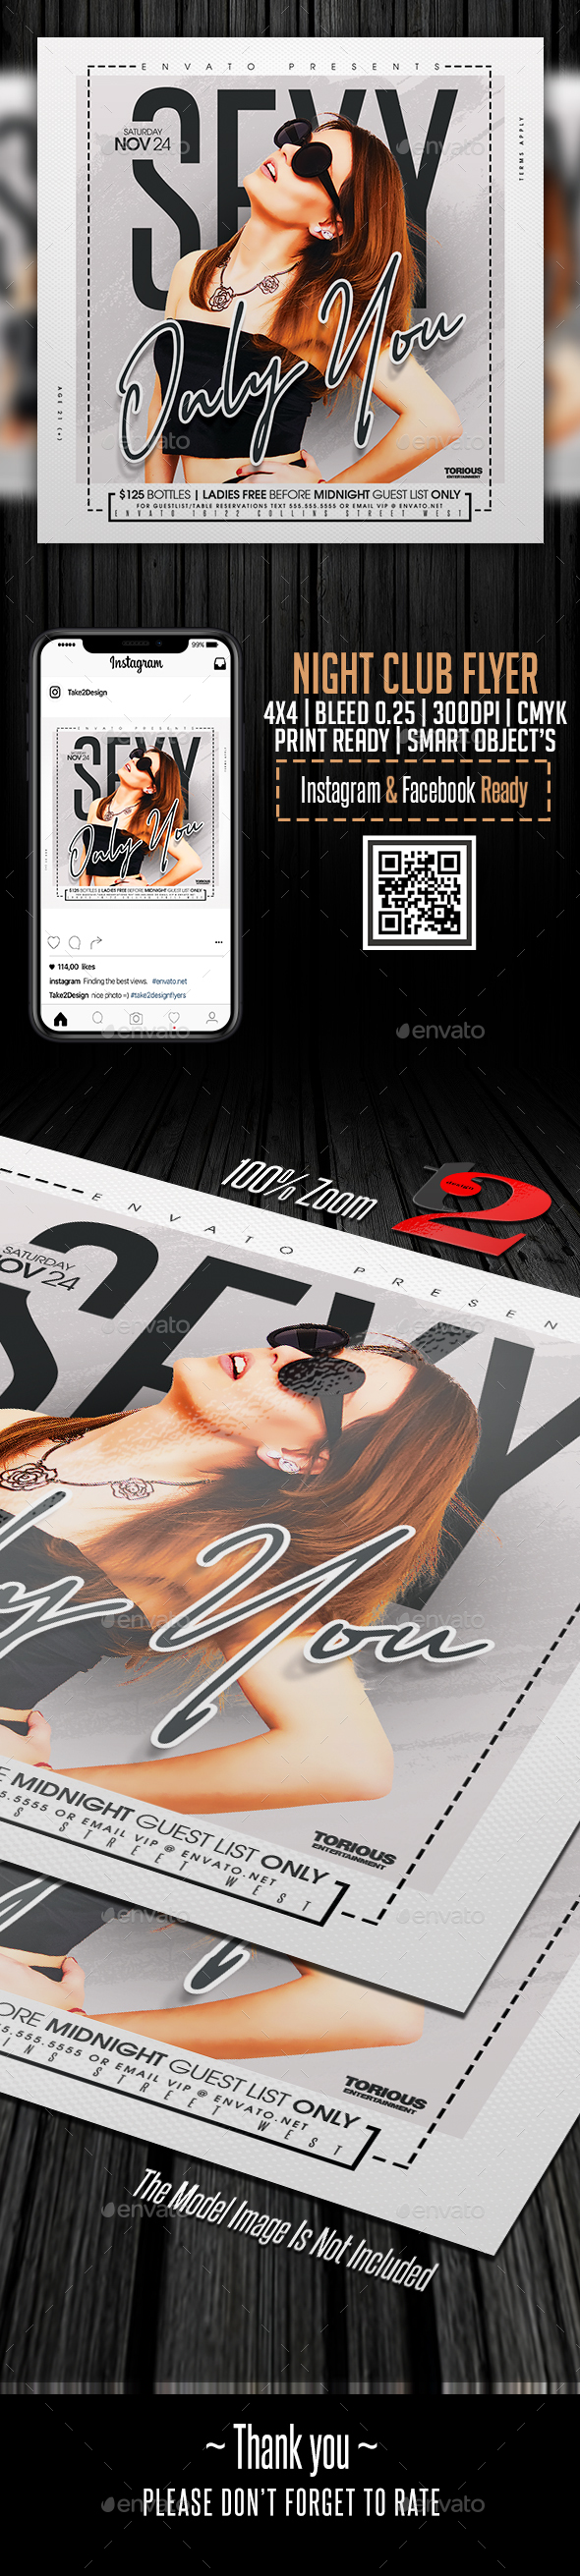 Flyers PSD – Evening Club Flyer Template – Download